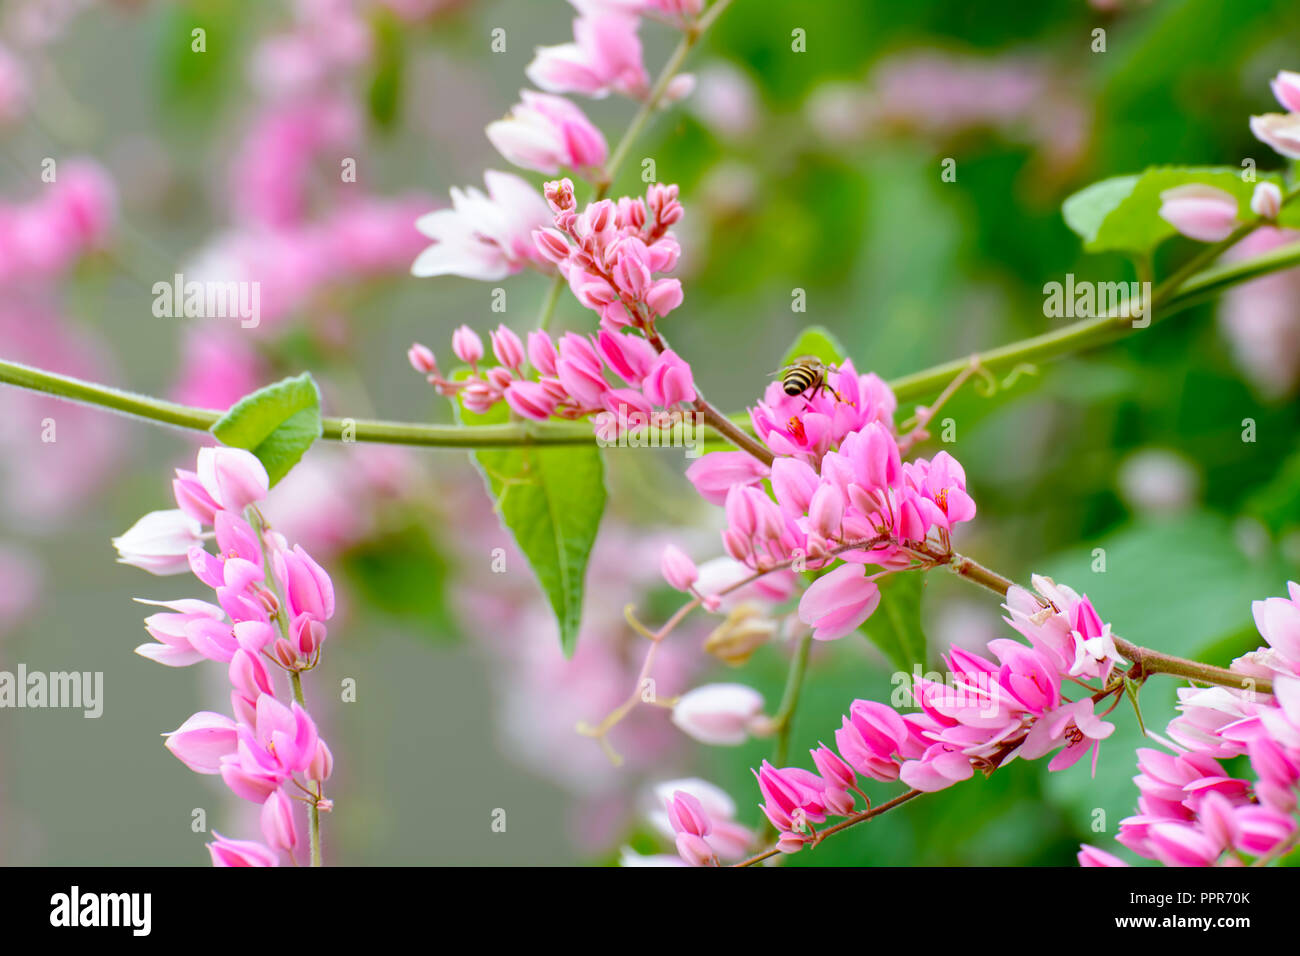 It Is A Vine With Pink Or White Flowers Stock Photo 220557251 Alamy